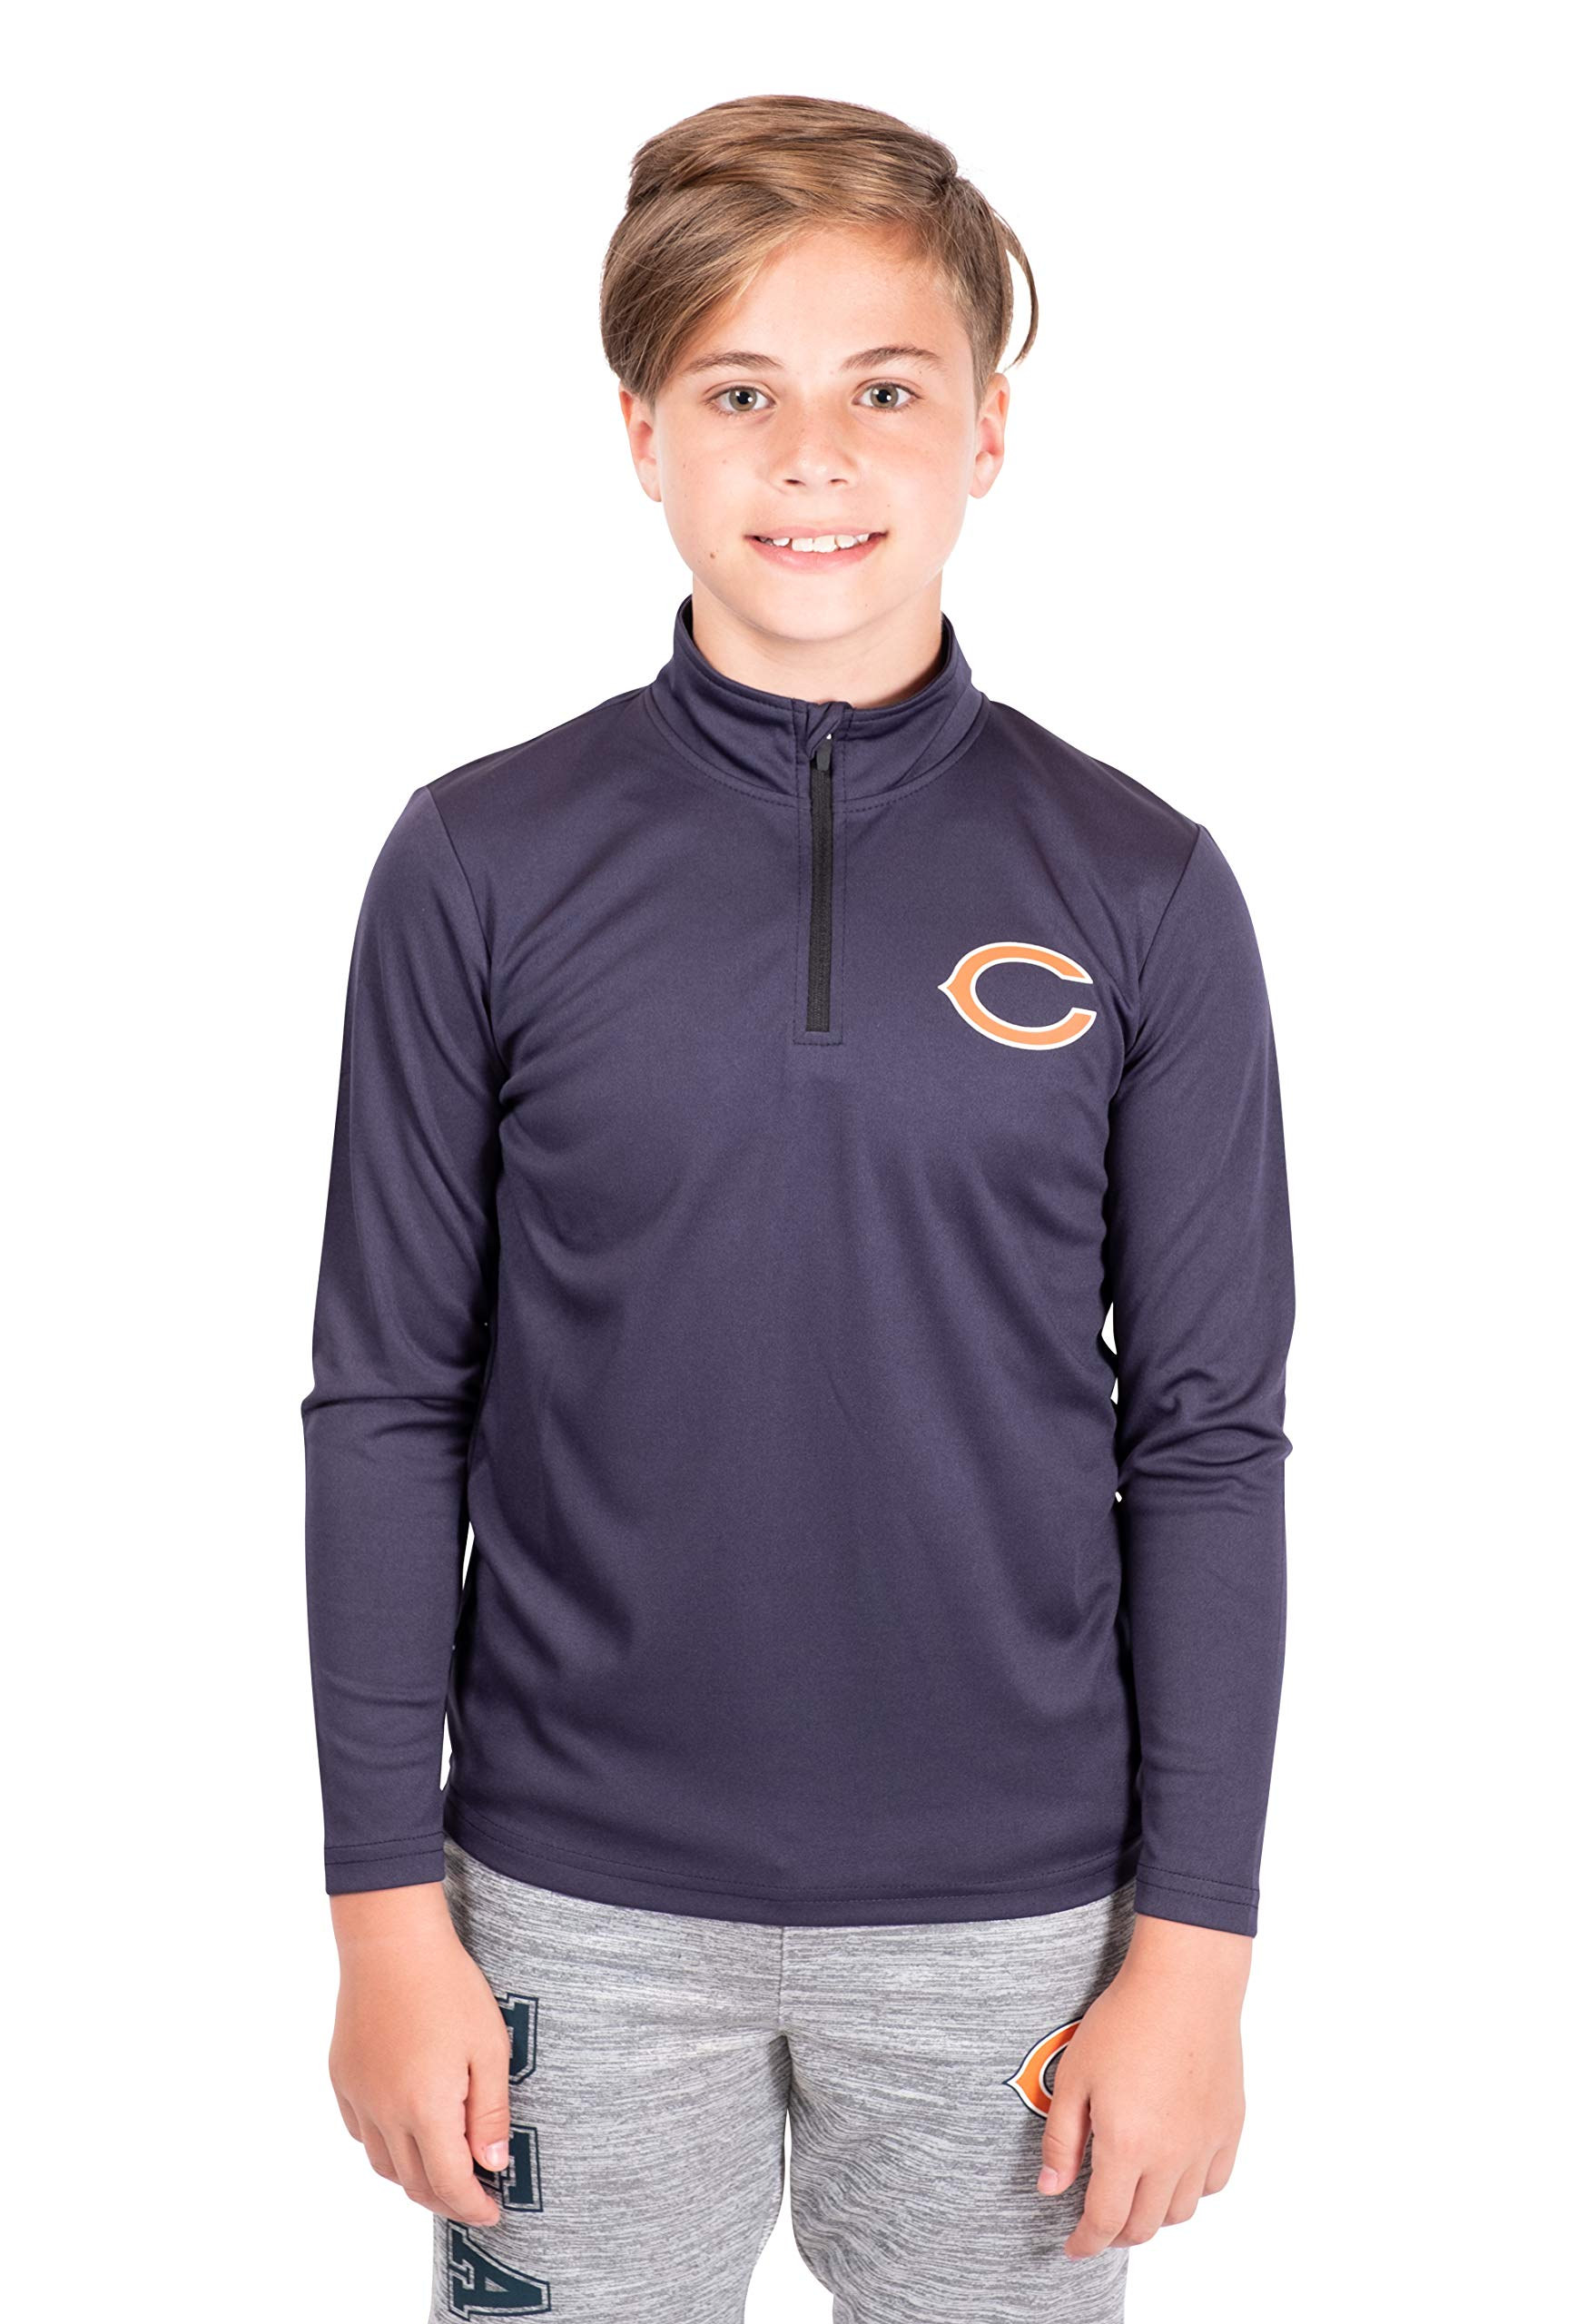 Ultra Game NFL Chicago Bears Boy's Quarter Zip Pullover Athletic Quick Dry Long Sleeve Tee Shirt, Navy, 14-16